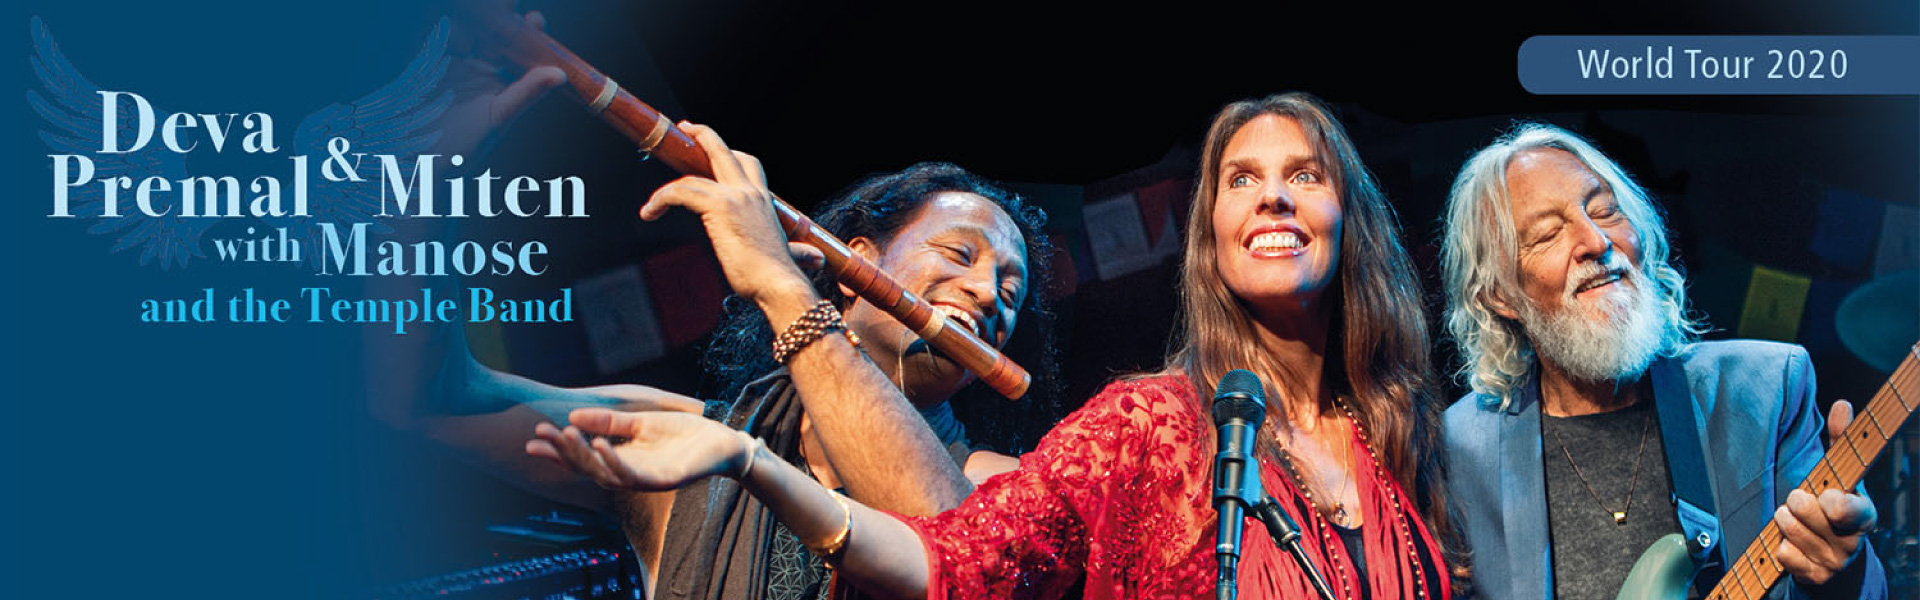 Deva Premal & Miten with Manose and the Temple Band :: 21 & 22 October 2020 @KAF Almere